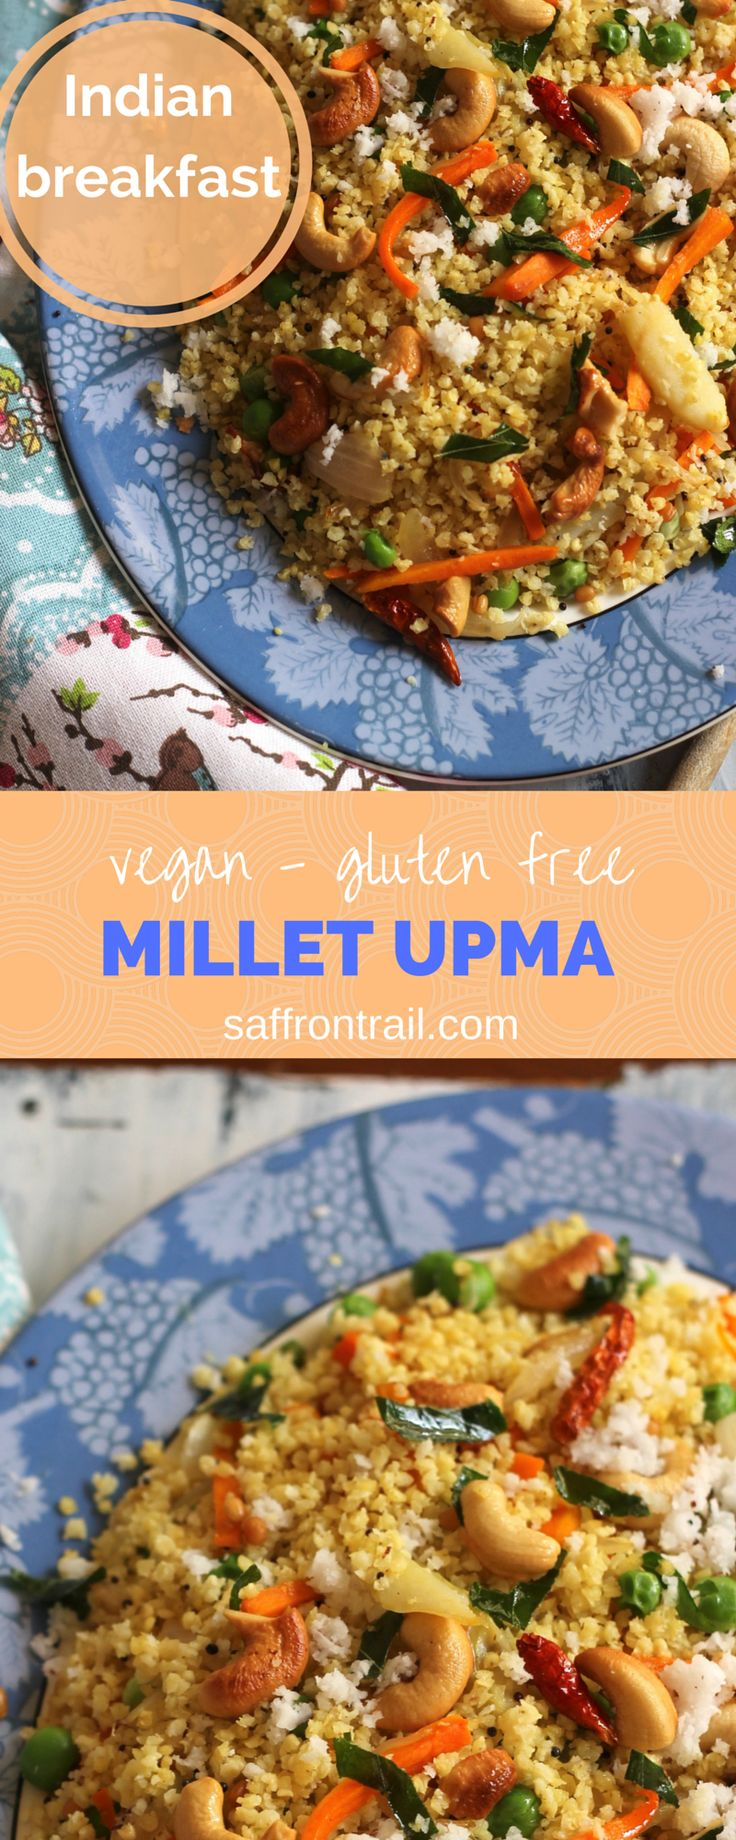 A South Indian Upma made healthier and filling with the use of Millets instead of rava/semolina. Naturally gluten-free and vegan too, if you use coconut oil.